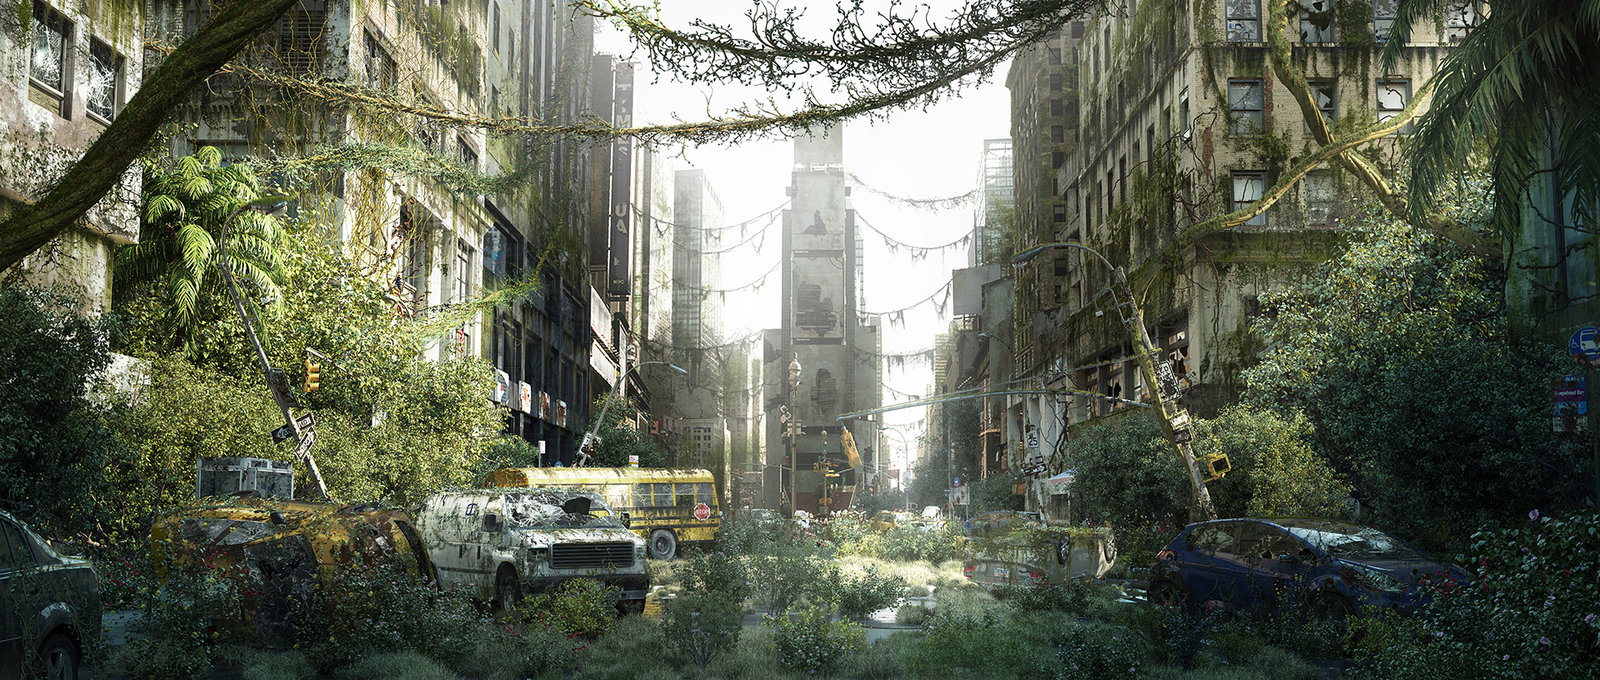 Oasis - Matte painting